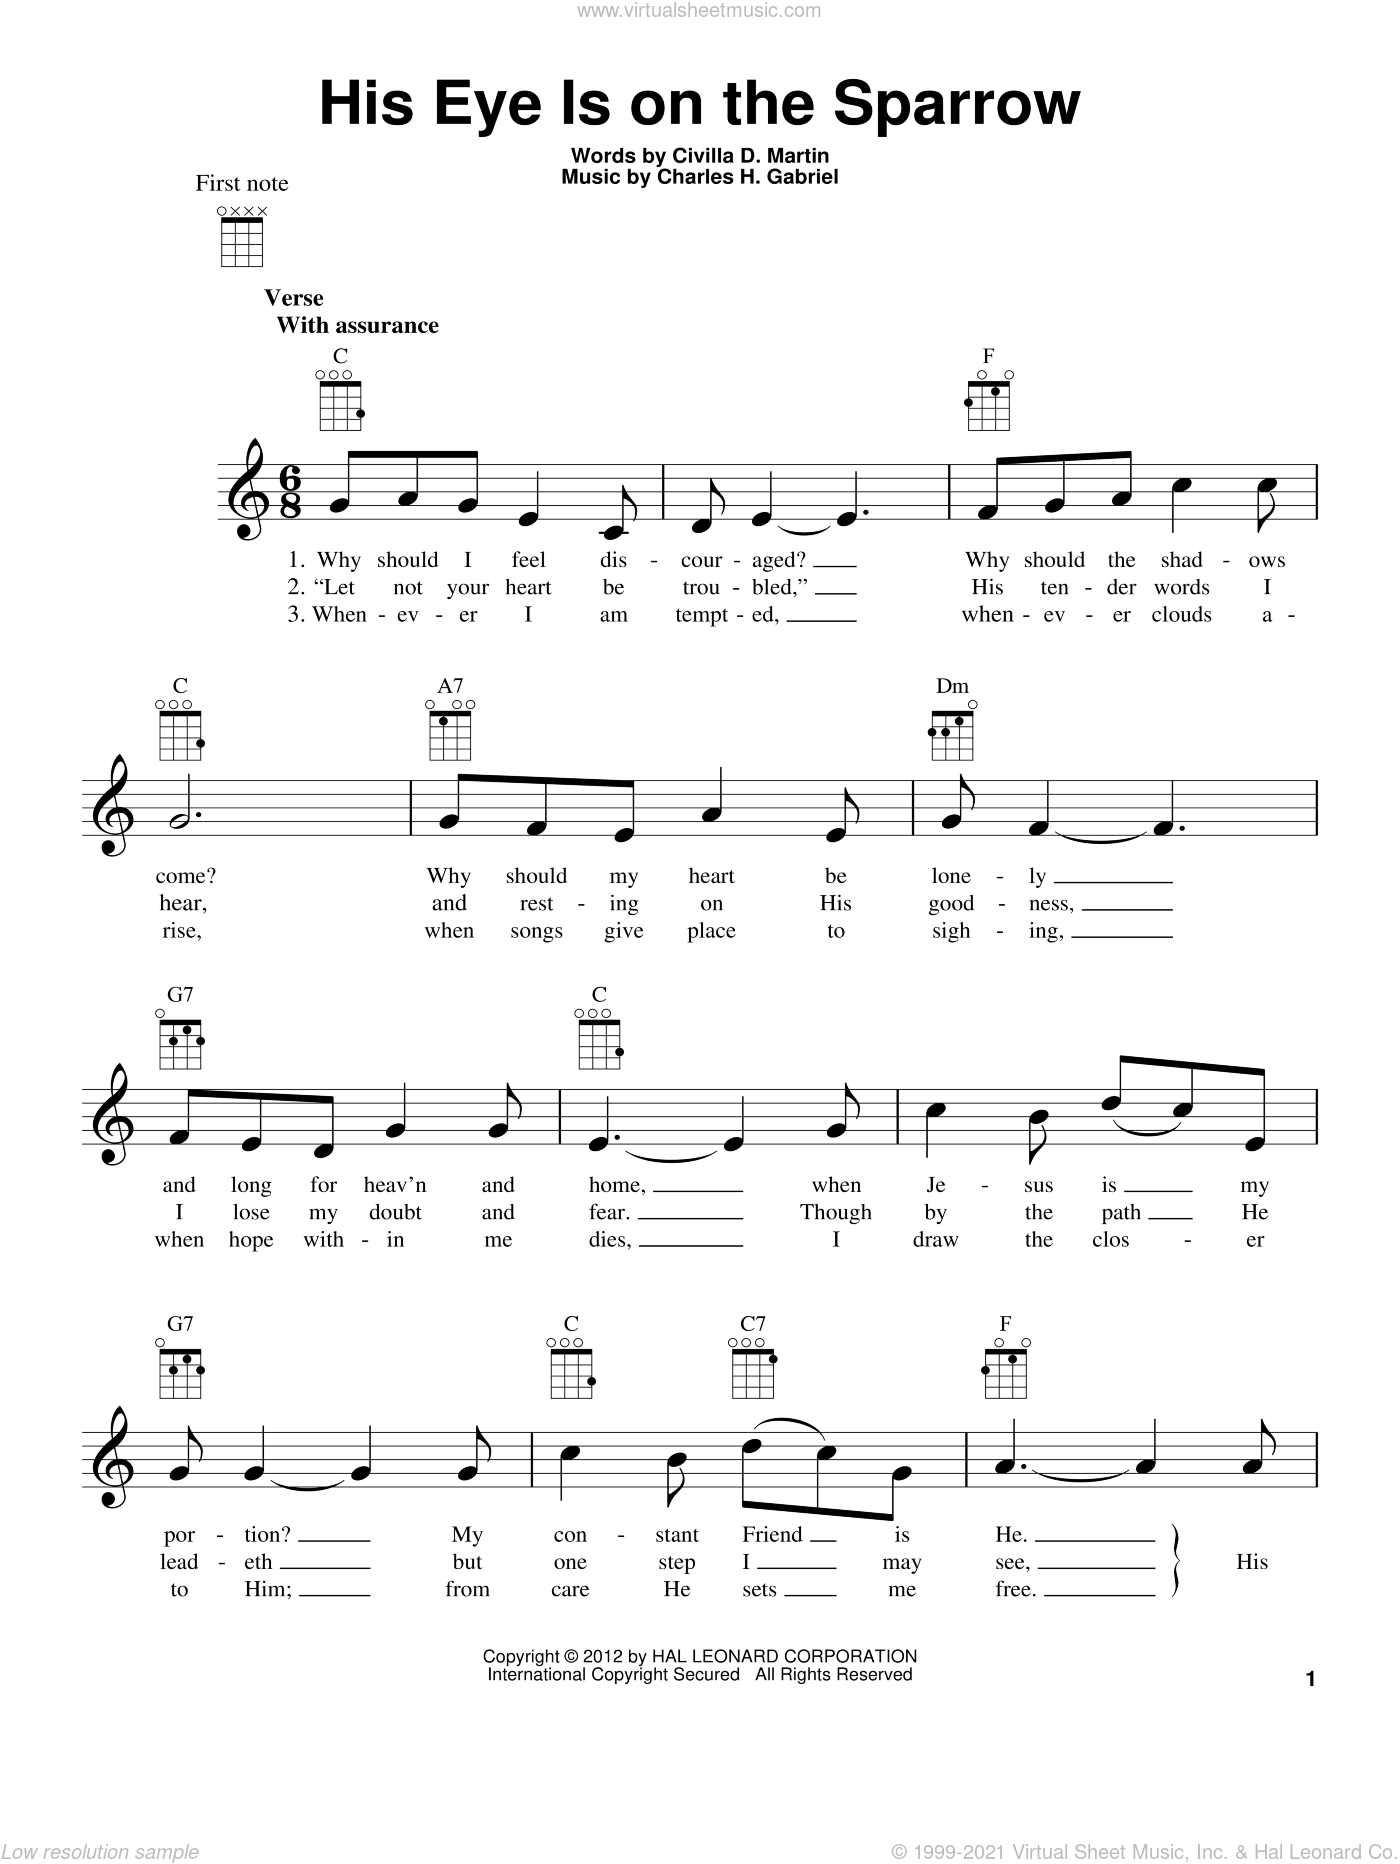 His Eye Is On The Sparrow sheet music for ukulele by Charles H. Gabriel and Civilla D. Martin, intermediate ukulele. Score Image Preview.